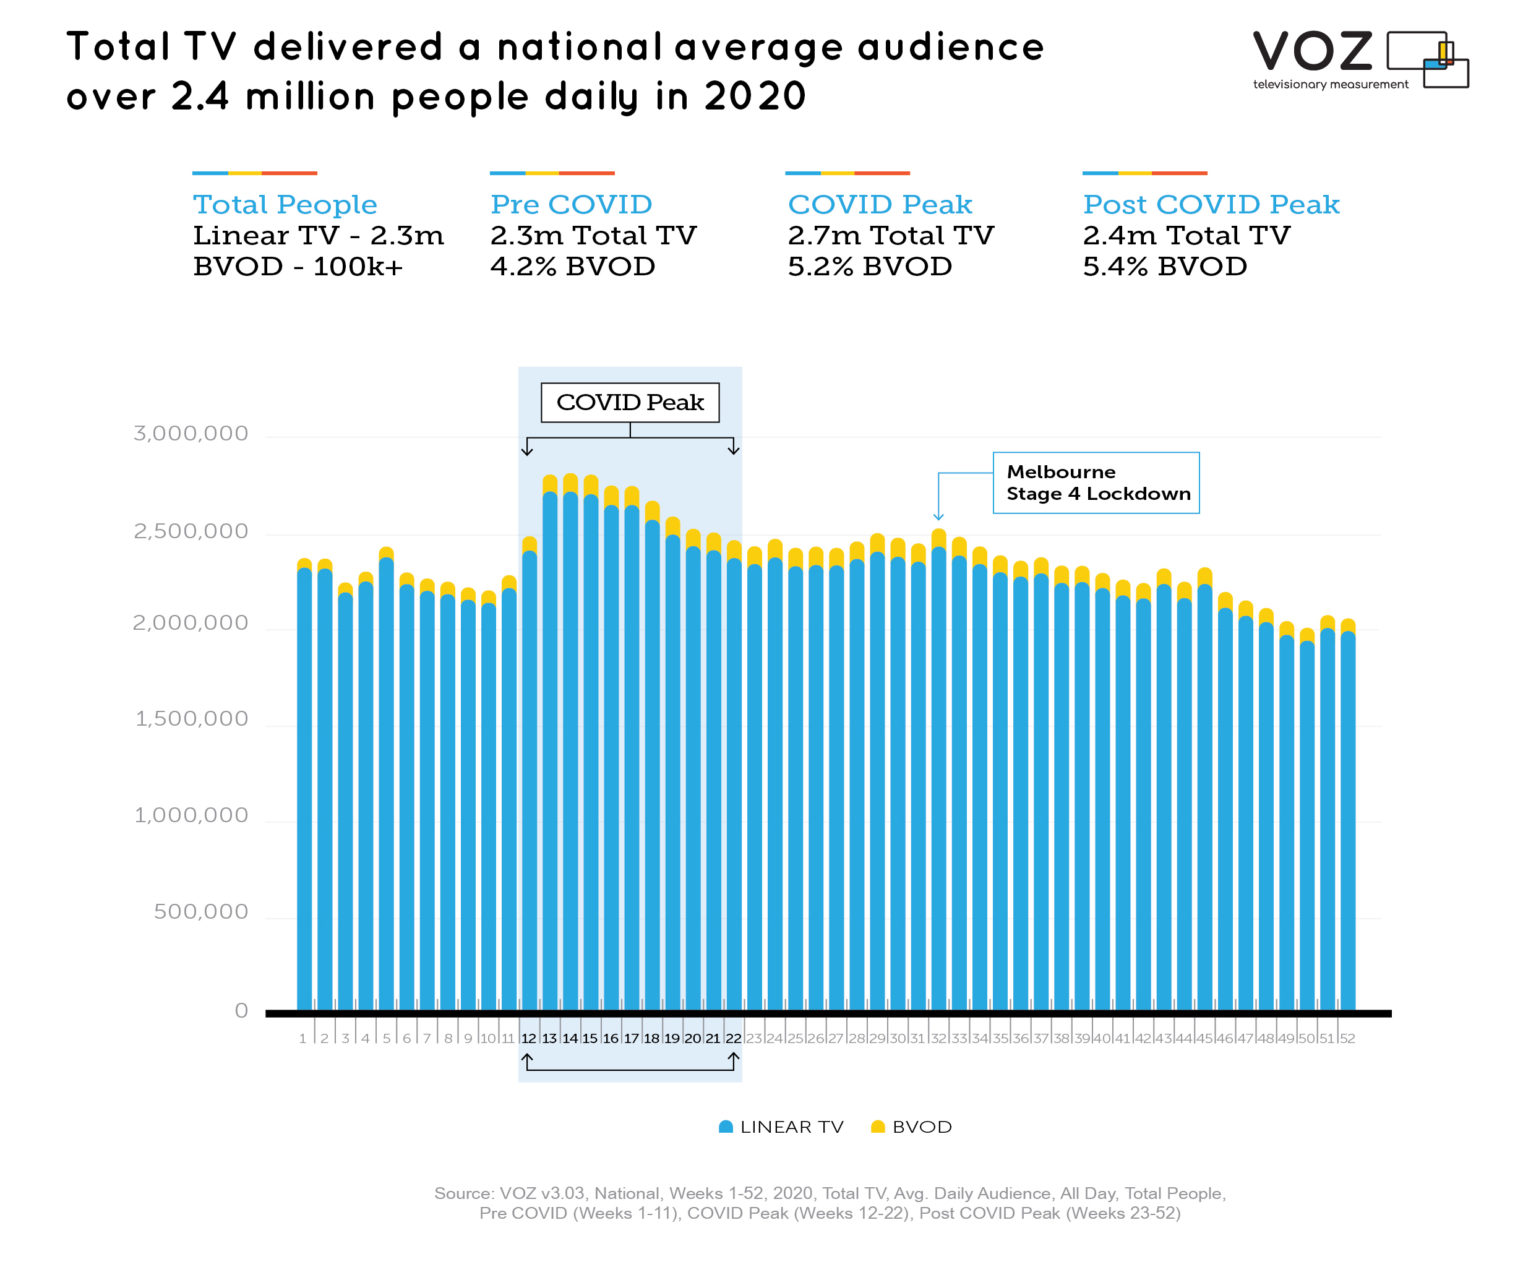 Australia - Total TV delivered a national average audience over 2.4 million people daily in 2020